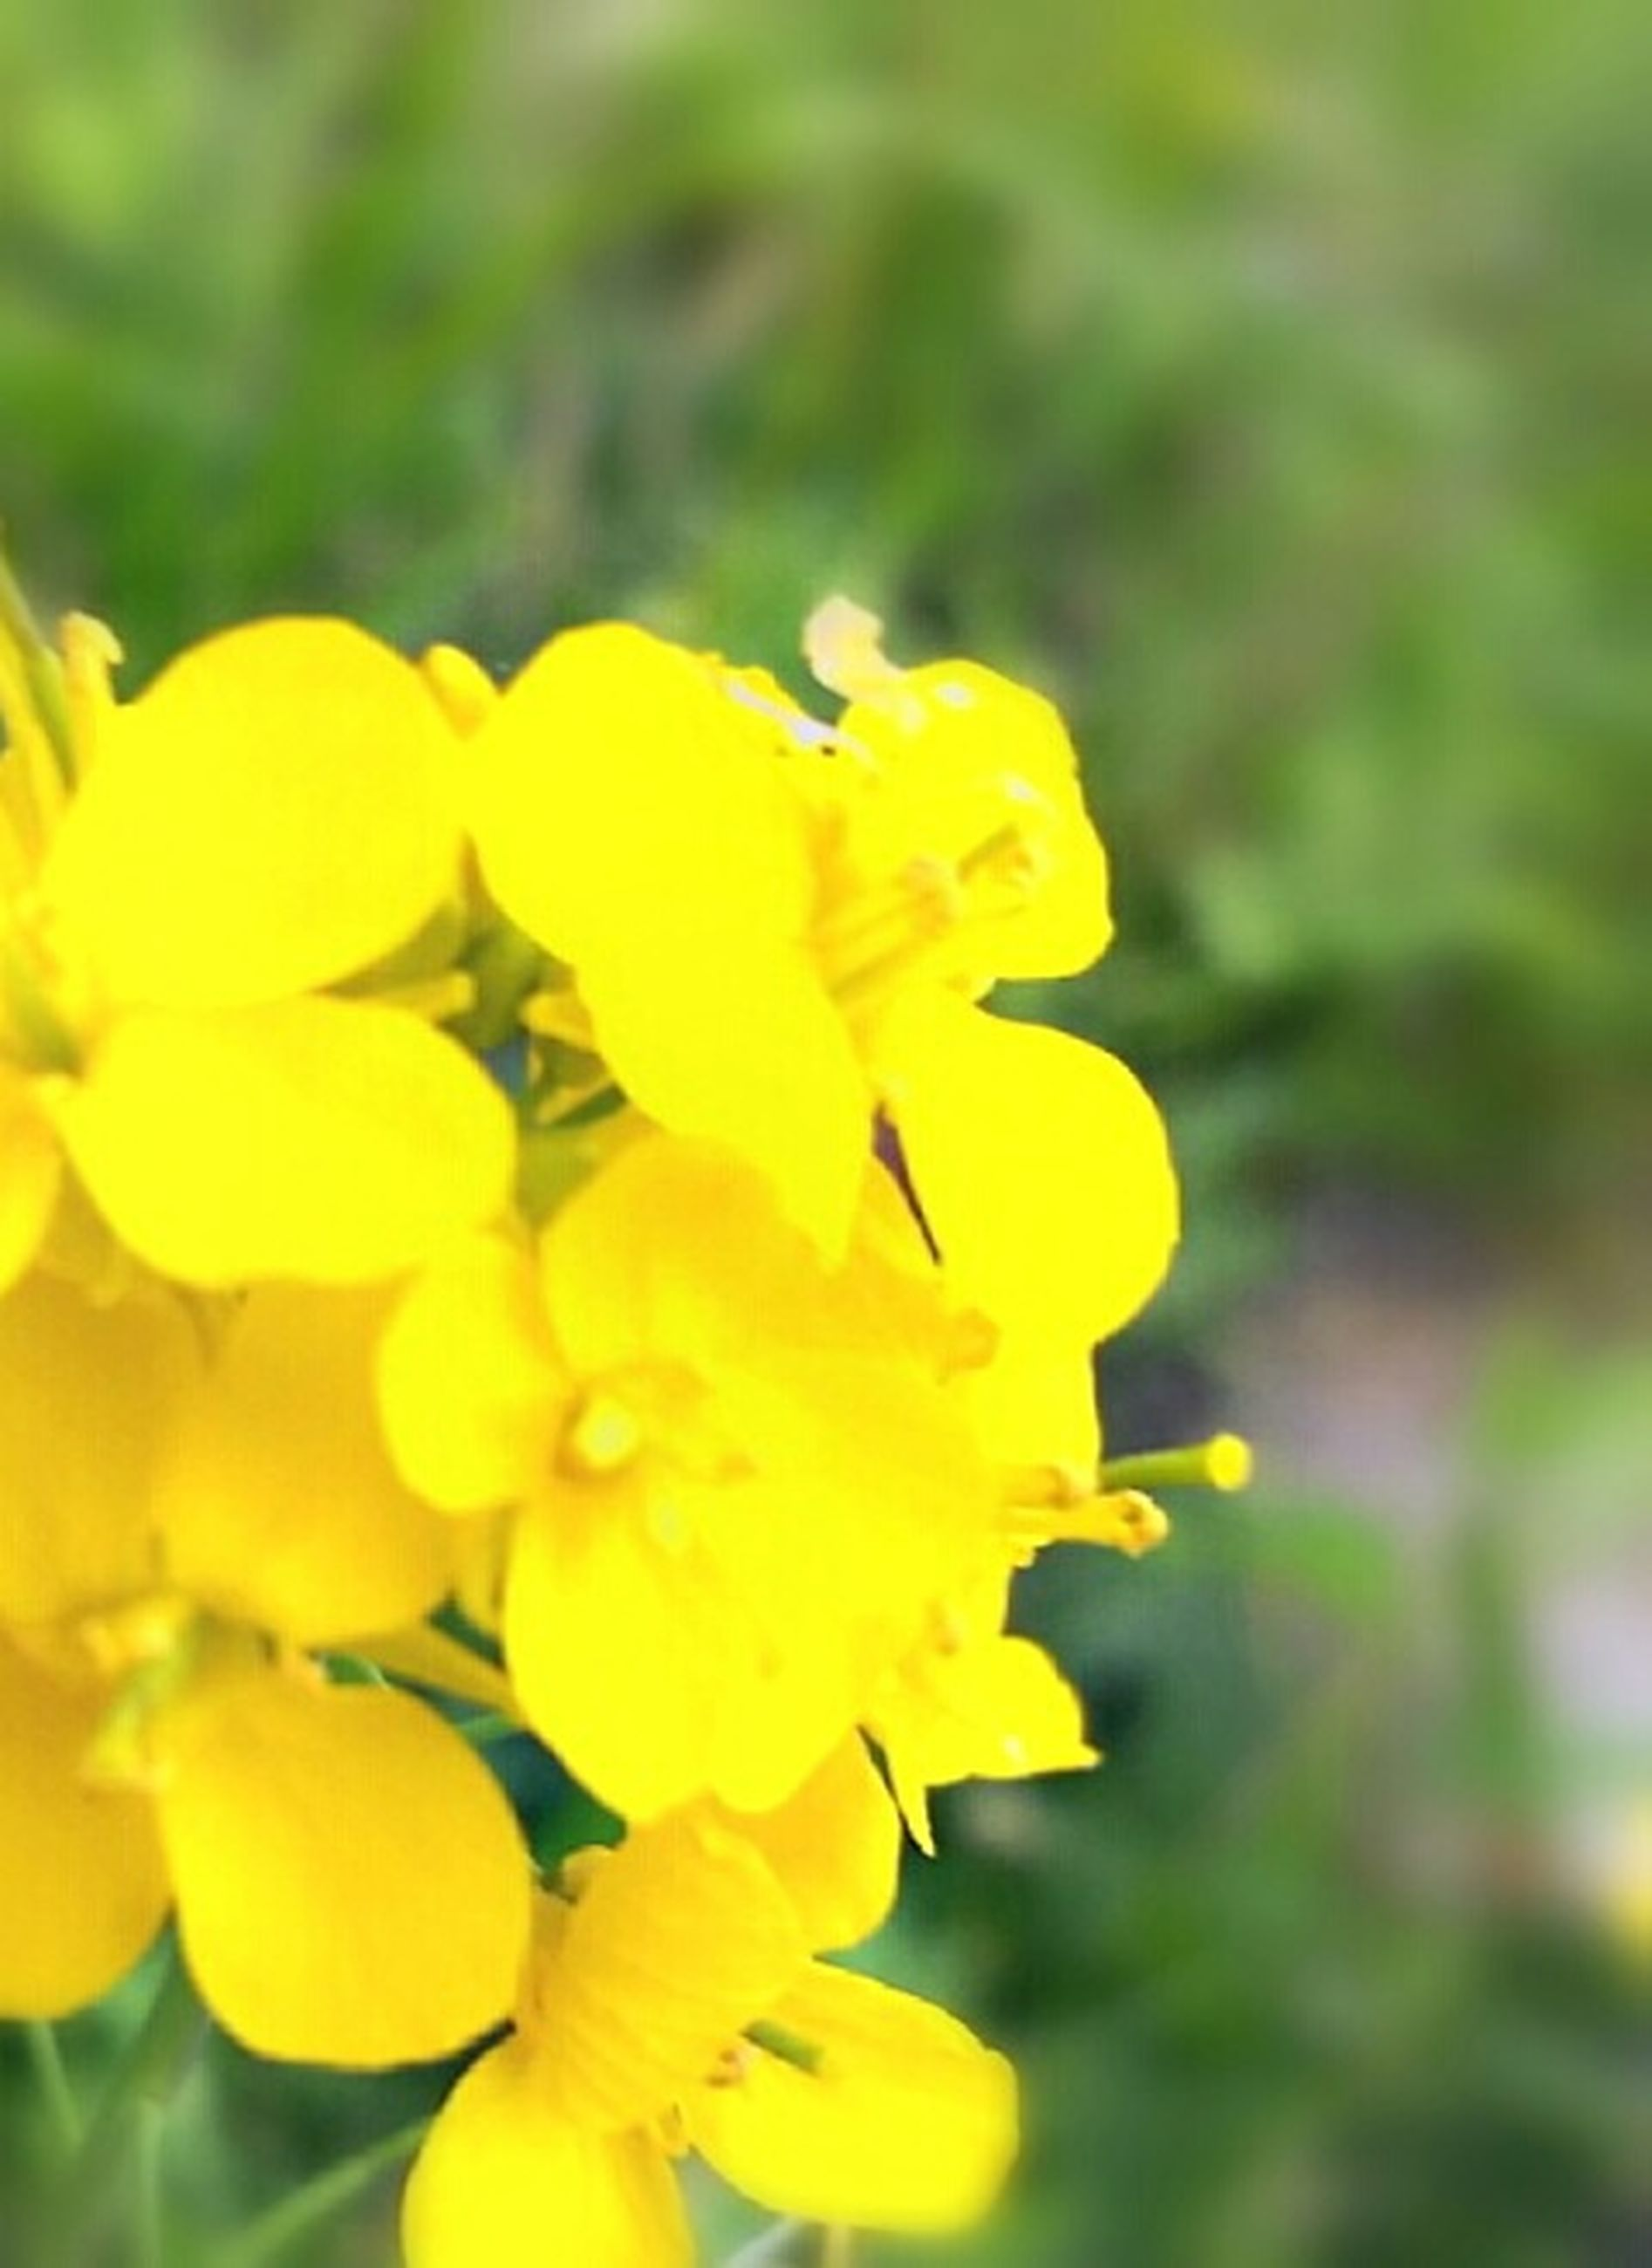 flower, petal, yellow, freshness, fragility, flower head, growth, beauty in nature, focus on foreground, blooming, close-up, nature, plant, in bloom, park - man made space, selective focus, blossom, day, outdoors, springtime